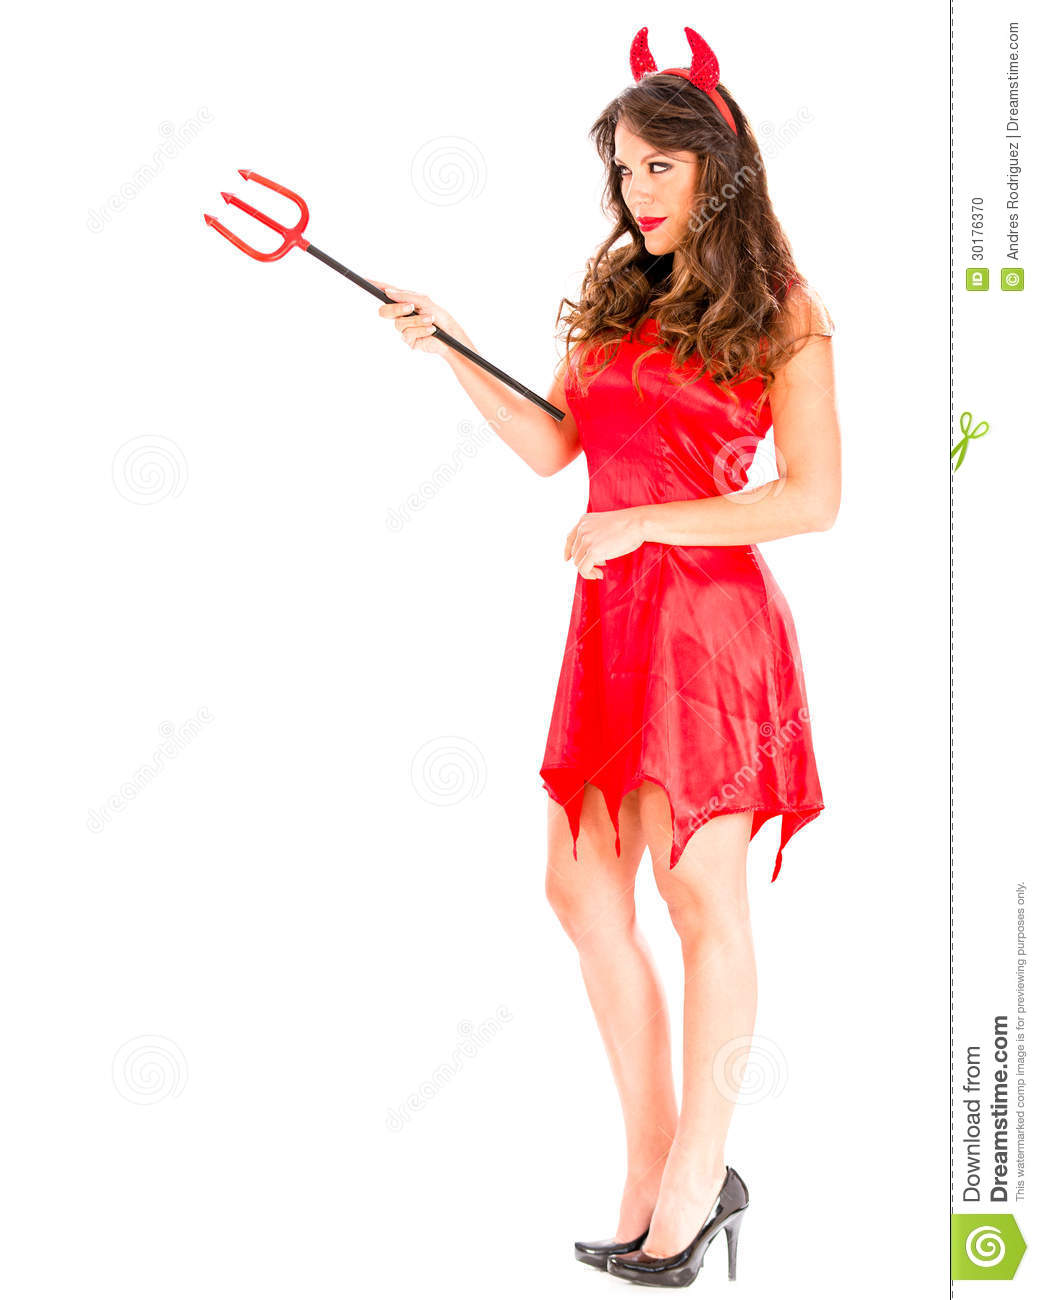 Evil female devil with a pitchfork - isolated over a white background.